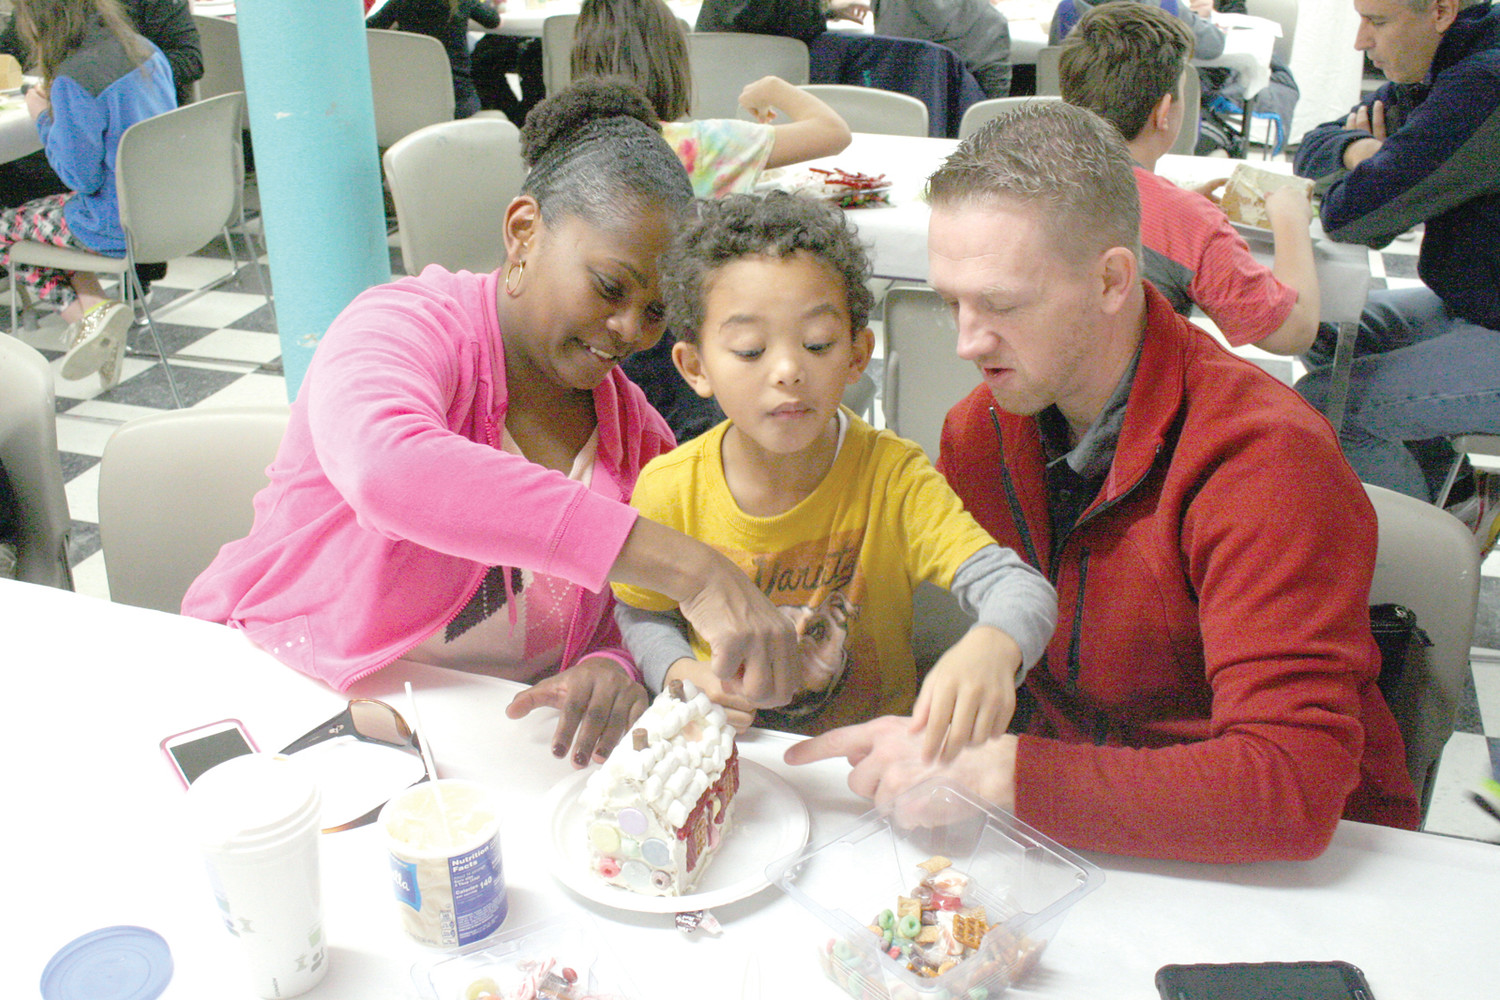 QUITE THE HANDFUL: Aydan Gray goes to grab candy – maybe to eat, maybe to decorate with – as he builds his gingerbread house with parents Brian and Ester Gray.